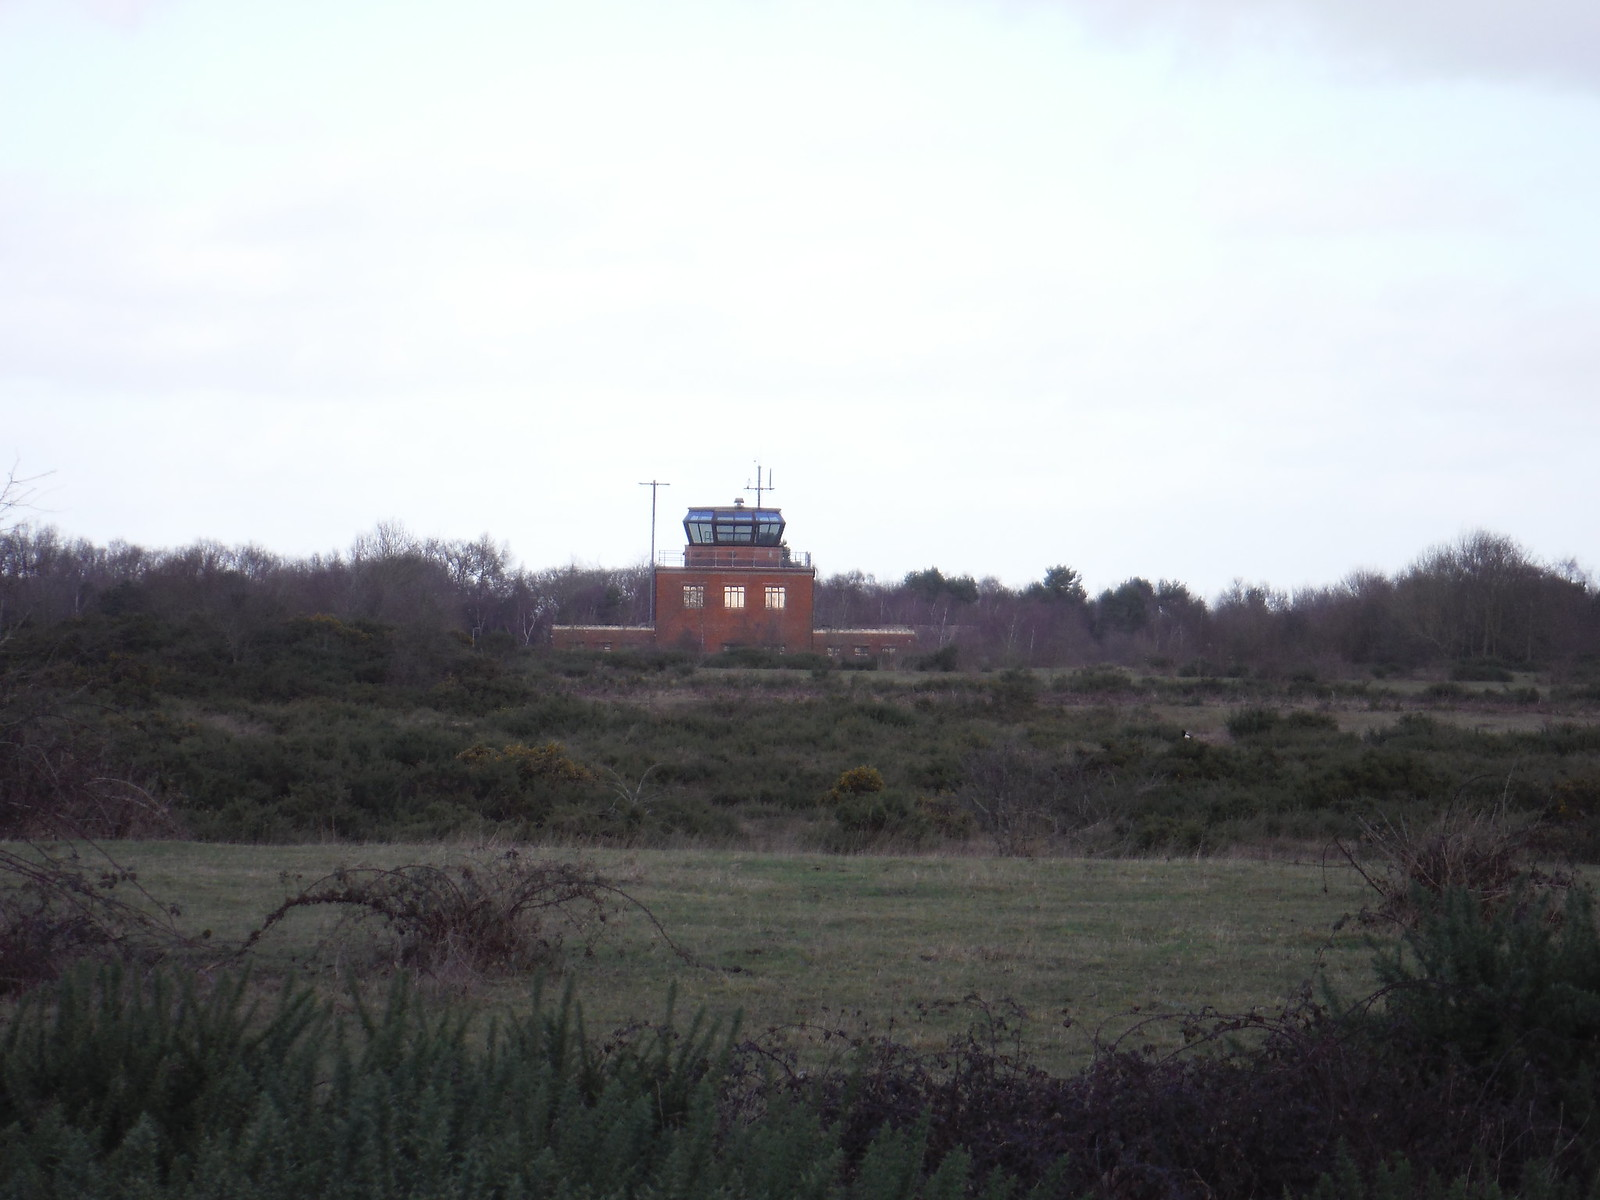 Greenham Common: Control Tower (Grade II listed) SWC Walk 34 Newbury Racecourse to Woolhampton (Midgham Station)